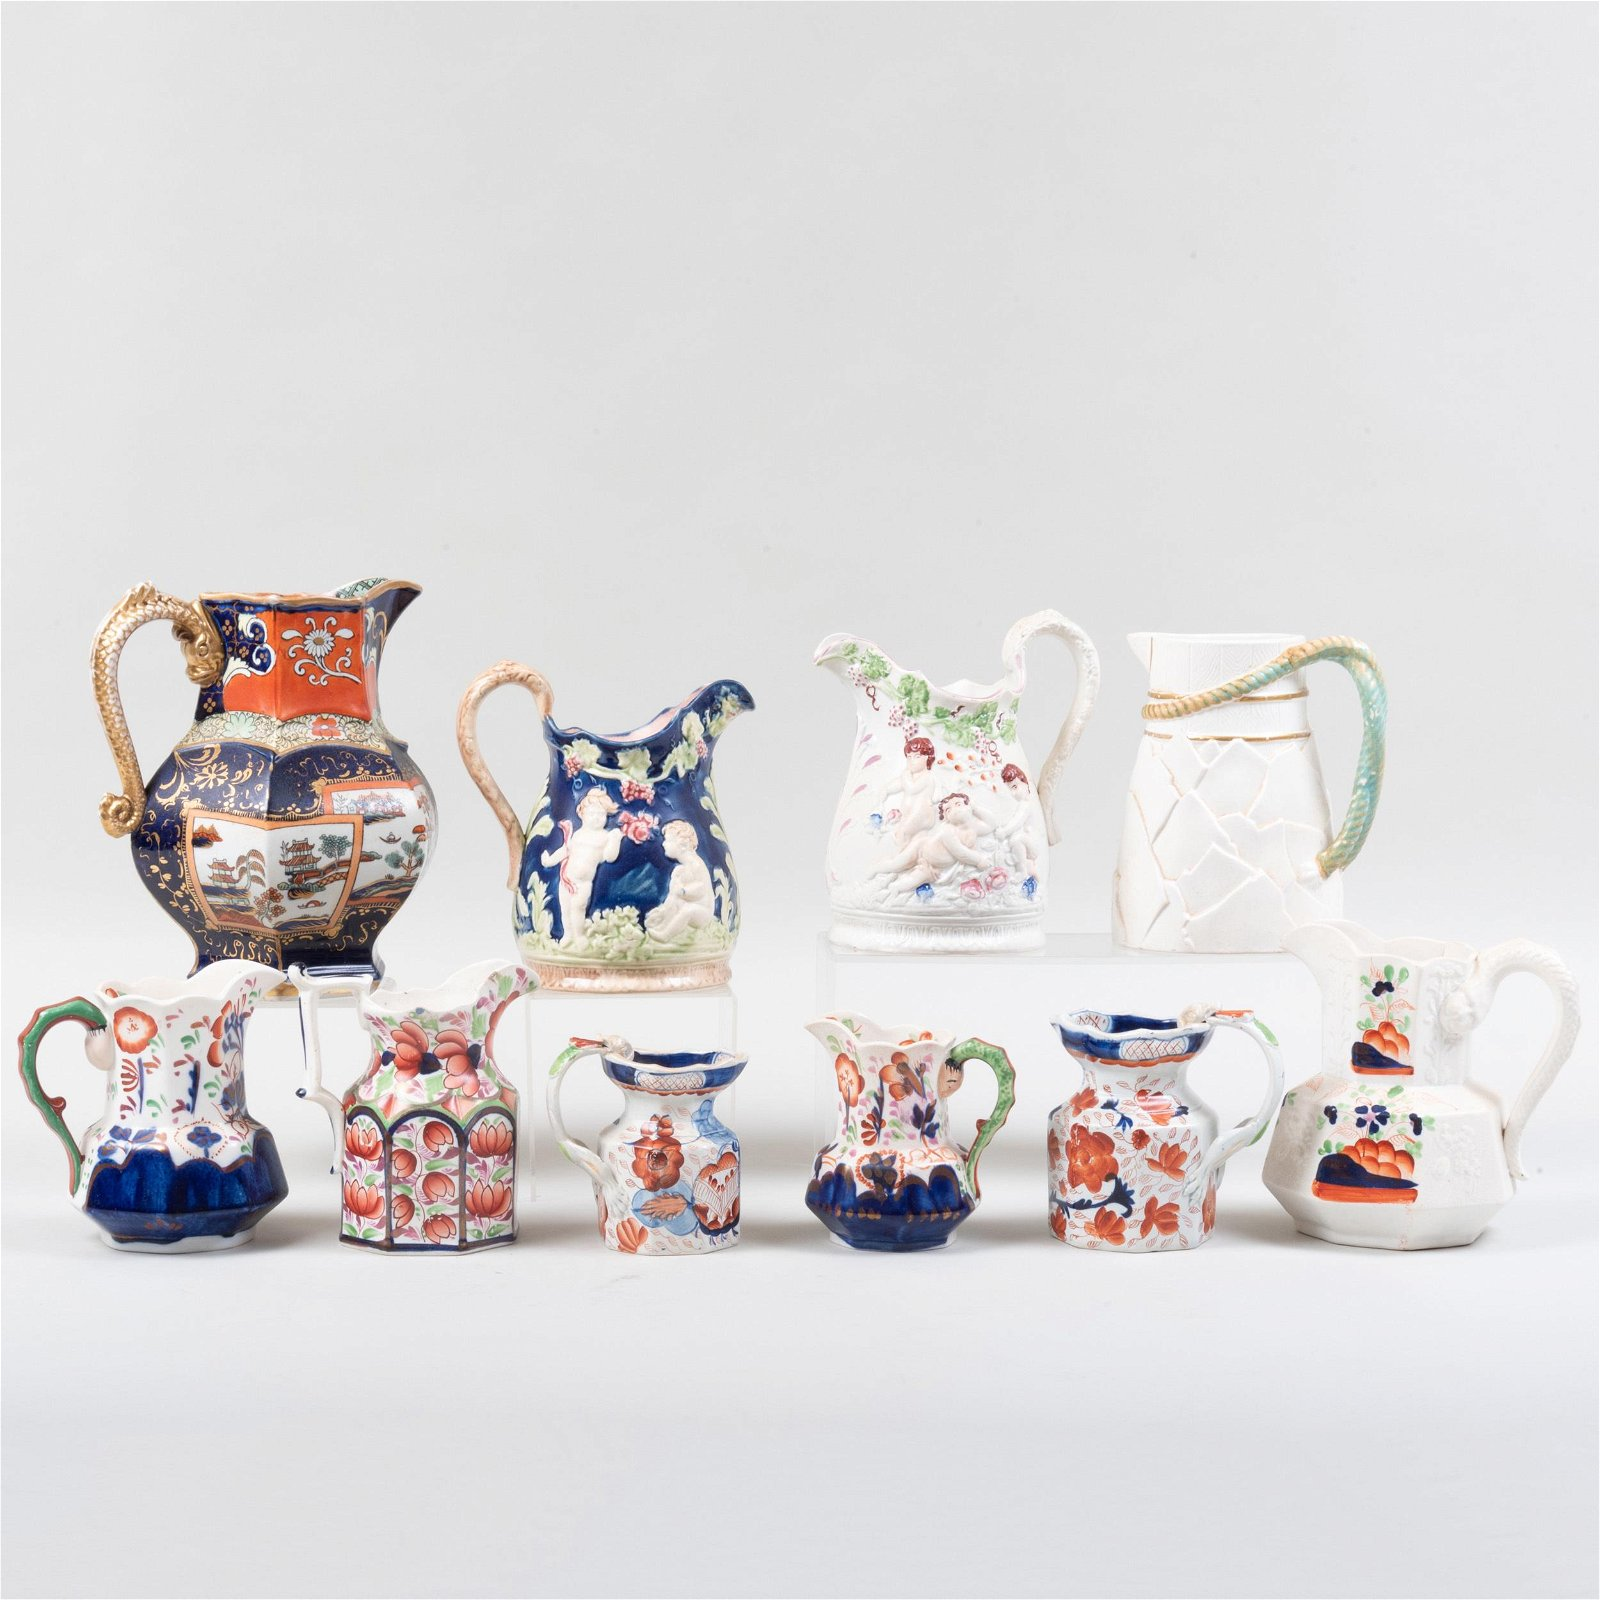 Group of Seven English Ironstone Pitchers and Three